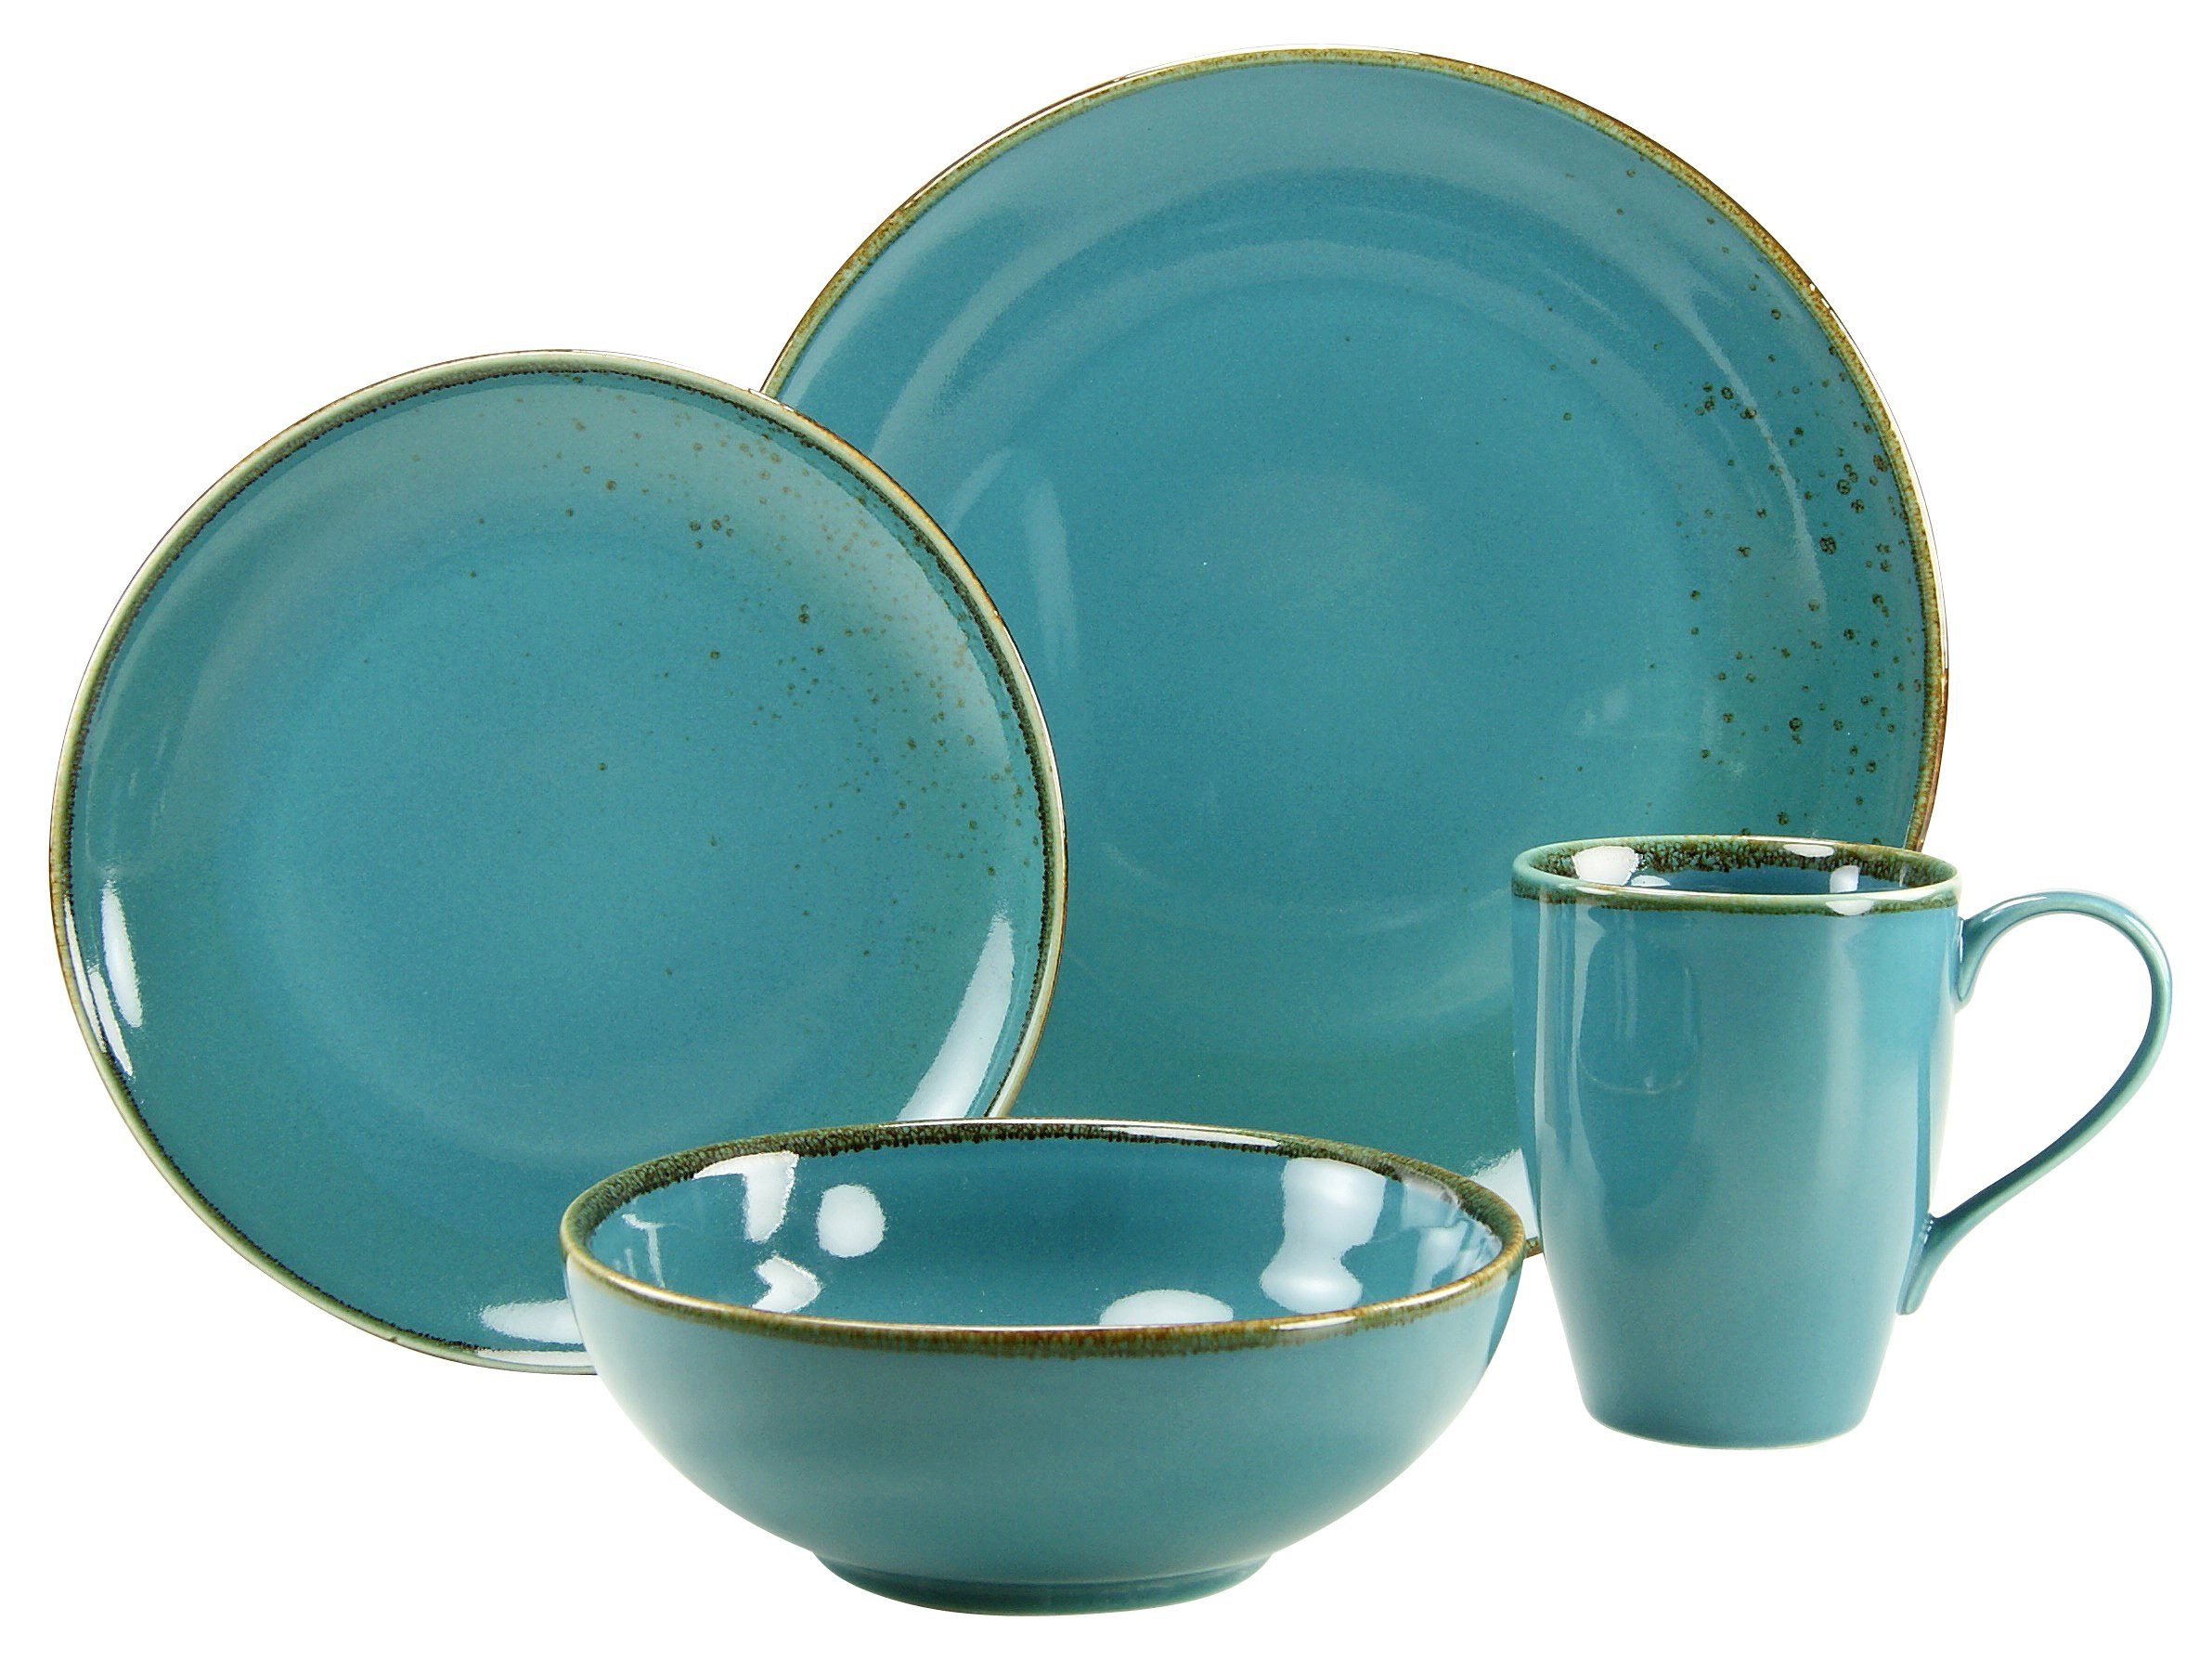 CreaTable Geschirr-Set, Steinzeug, 4 Teile, wasserblau, »NATURE COLLECTION«